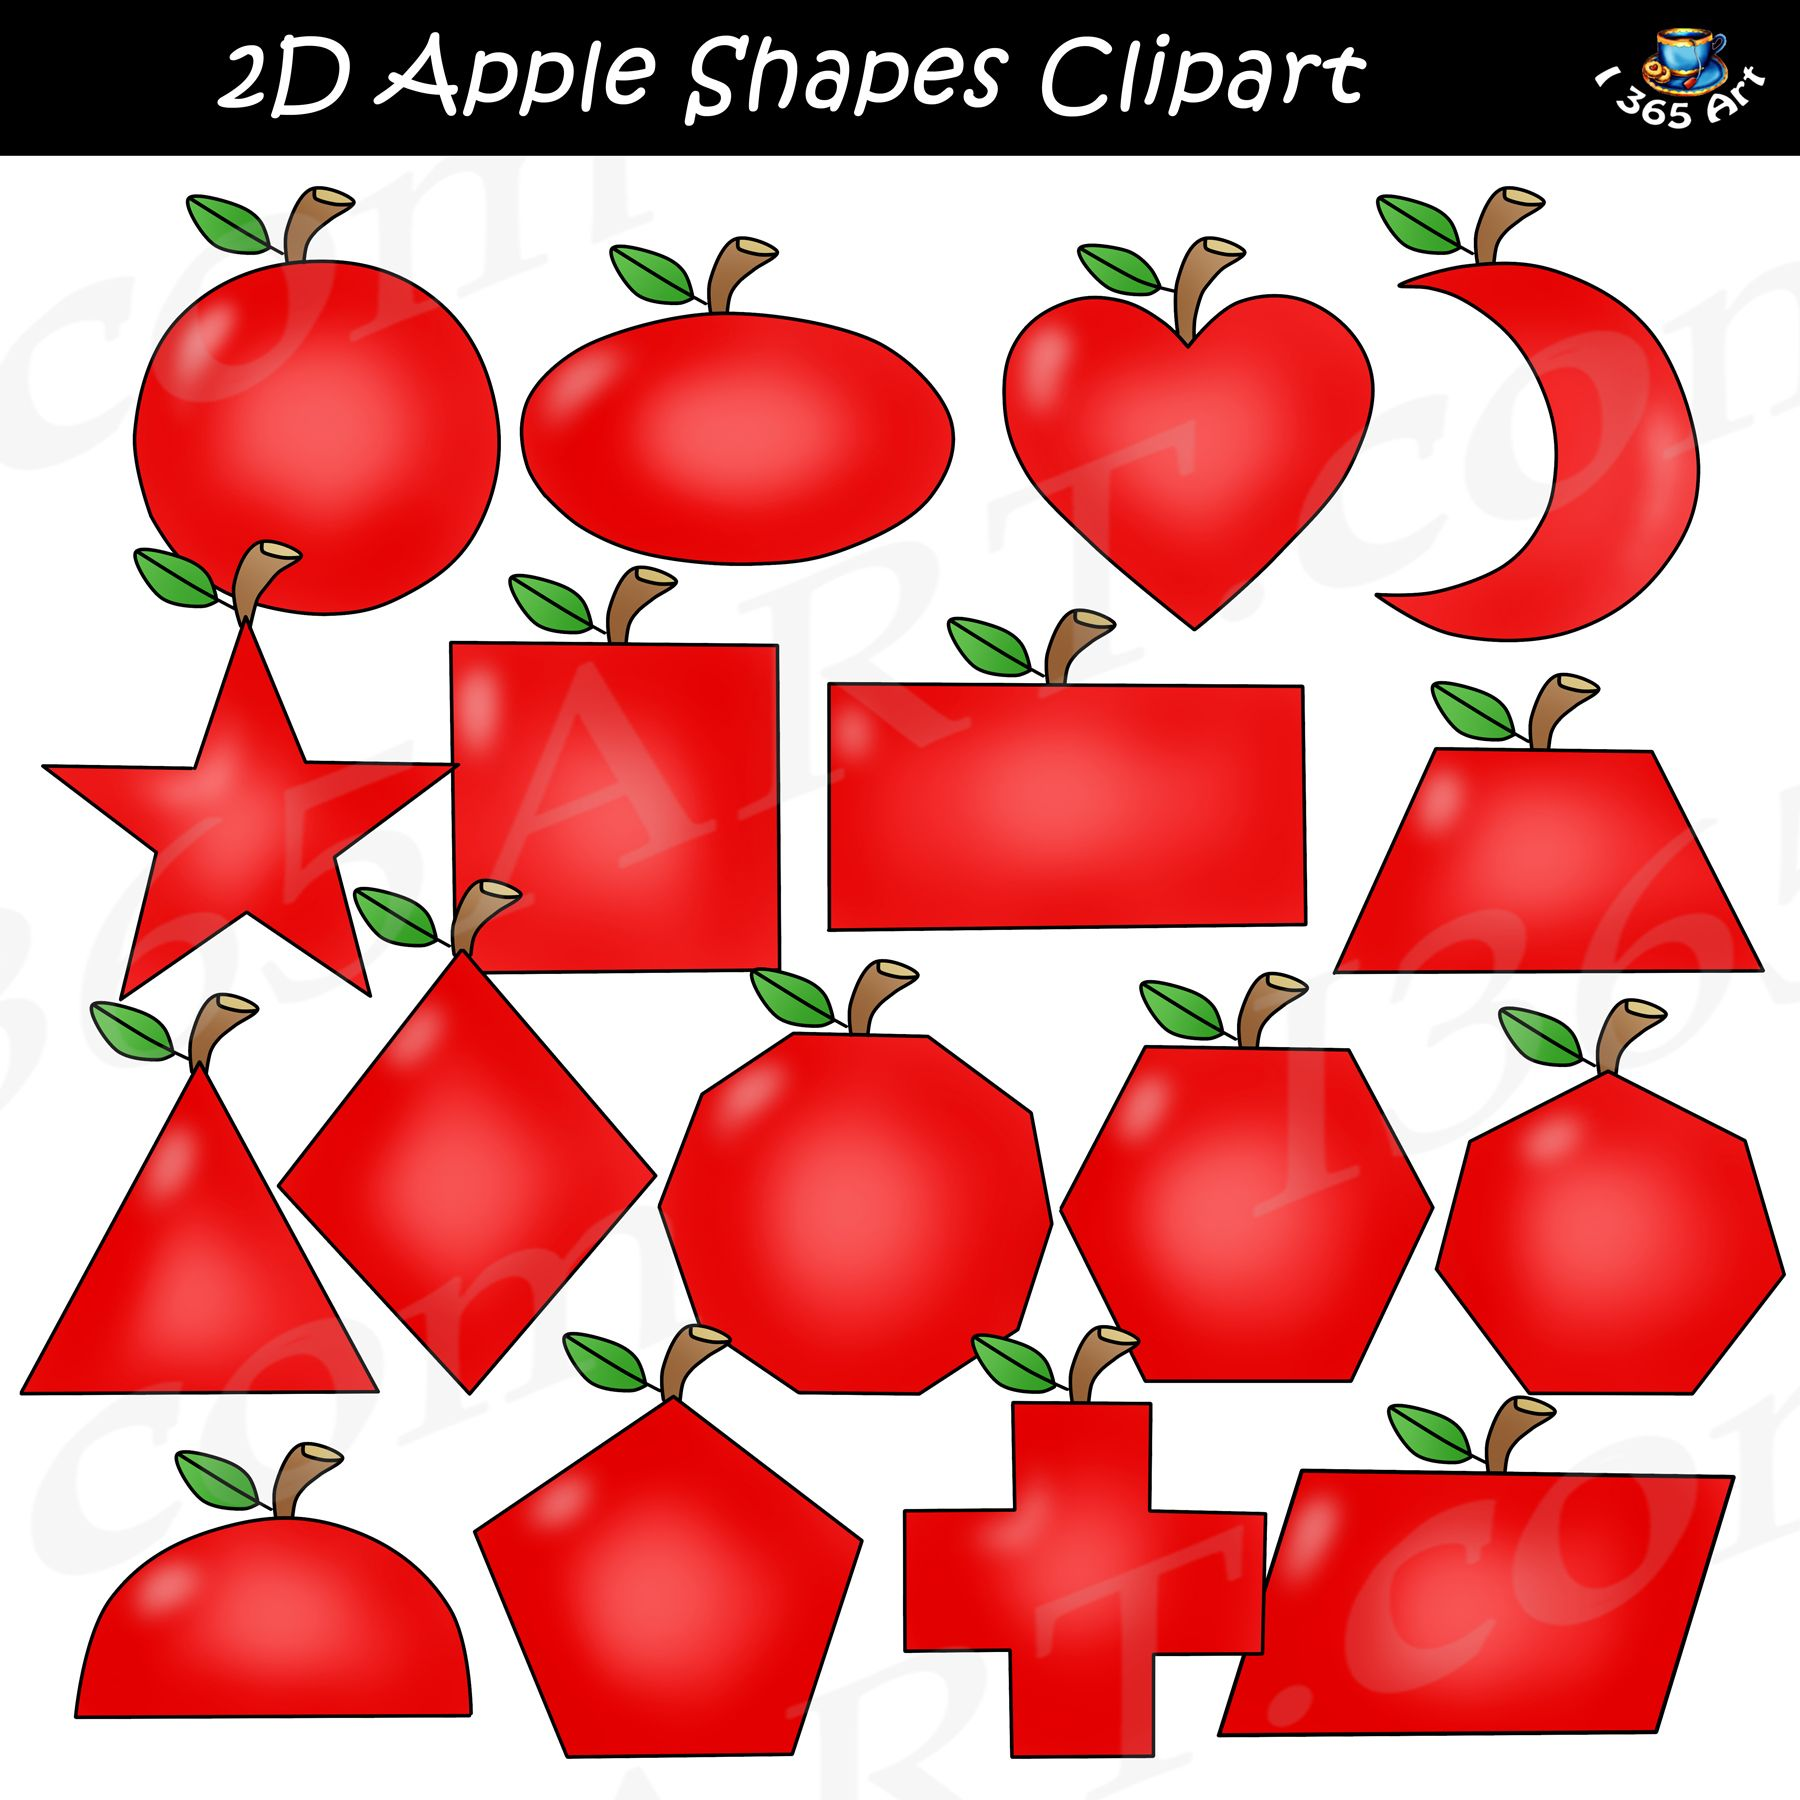 2D Apple Shapes Clipart Graphics Download (With images